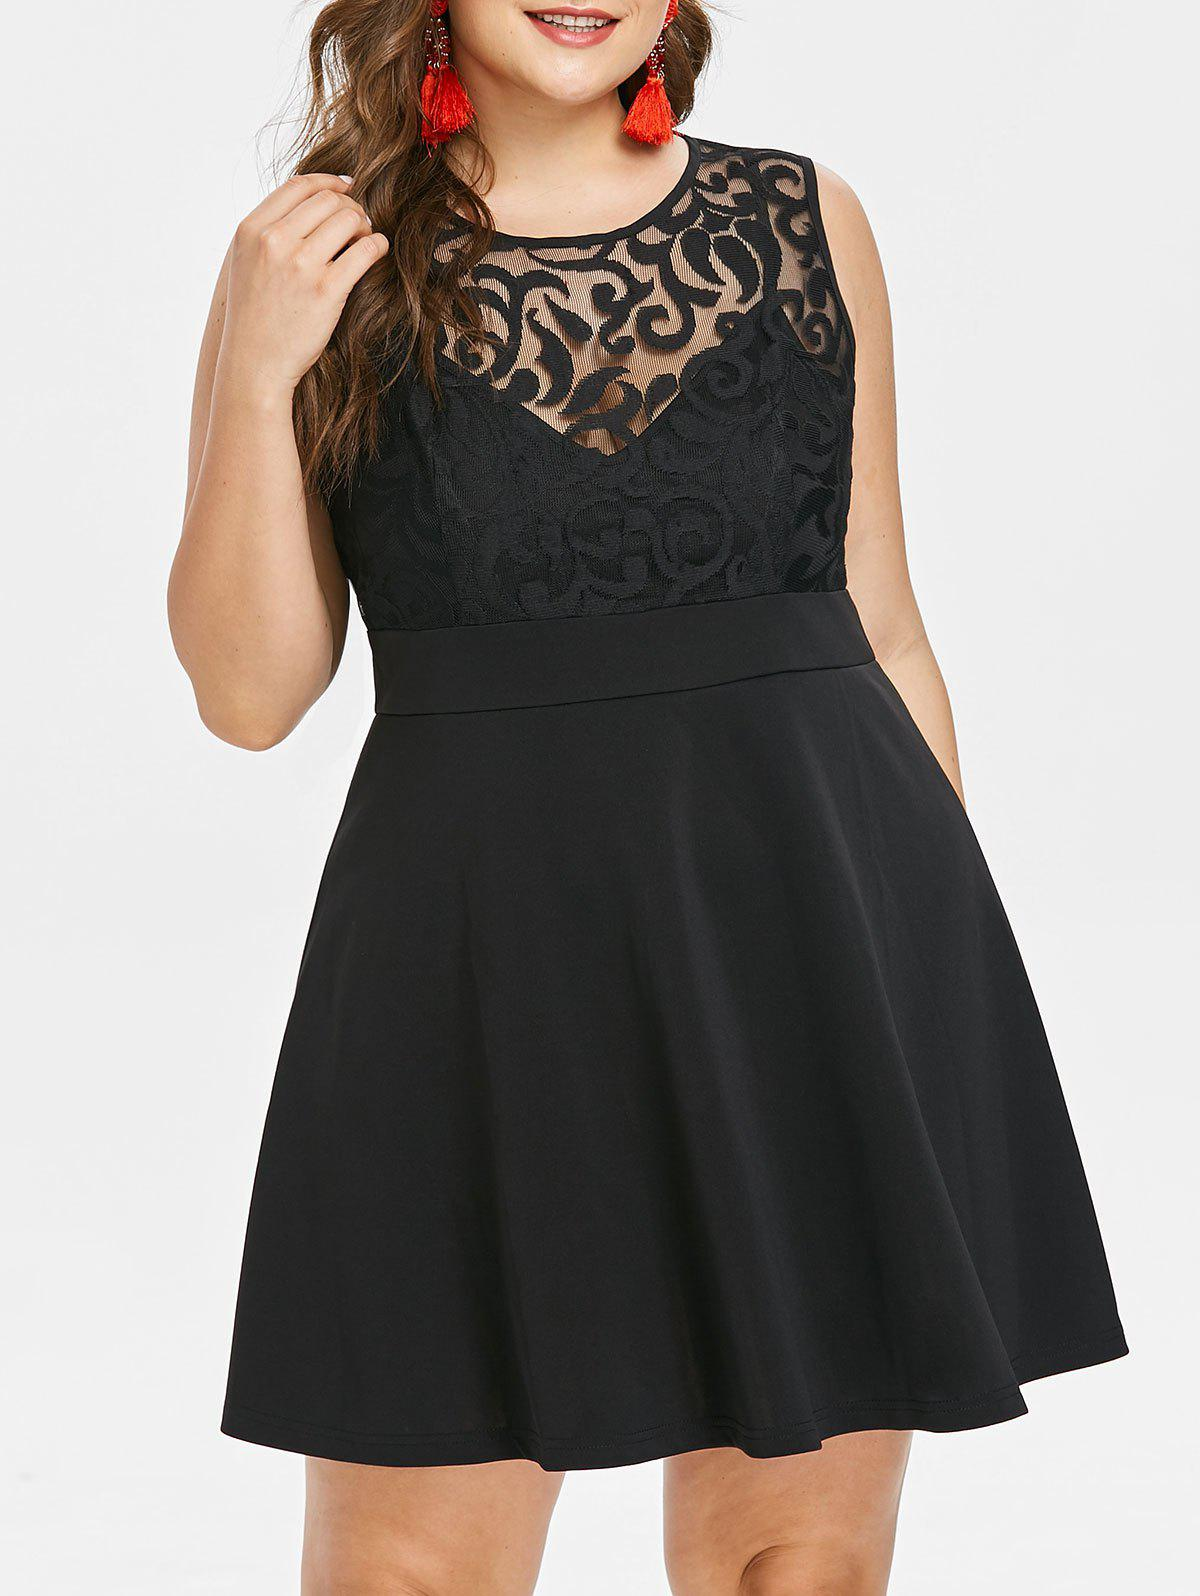 Trendy Plus Size Mesh Panel Sleeveless Dress